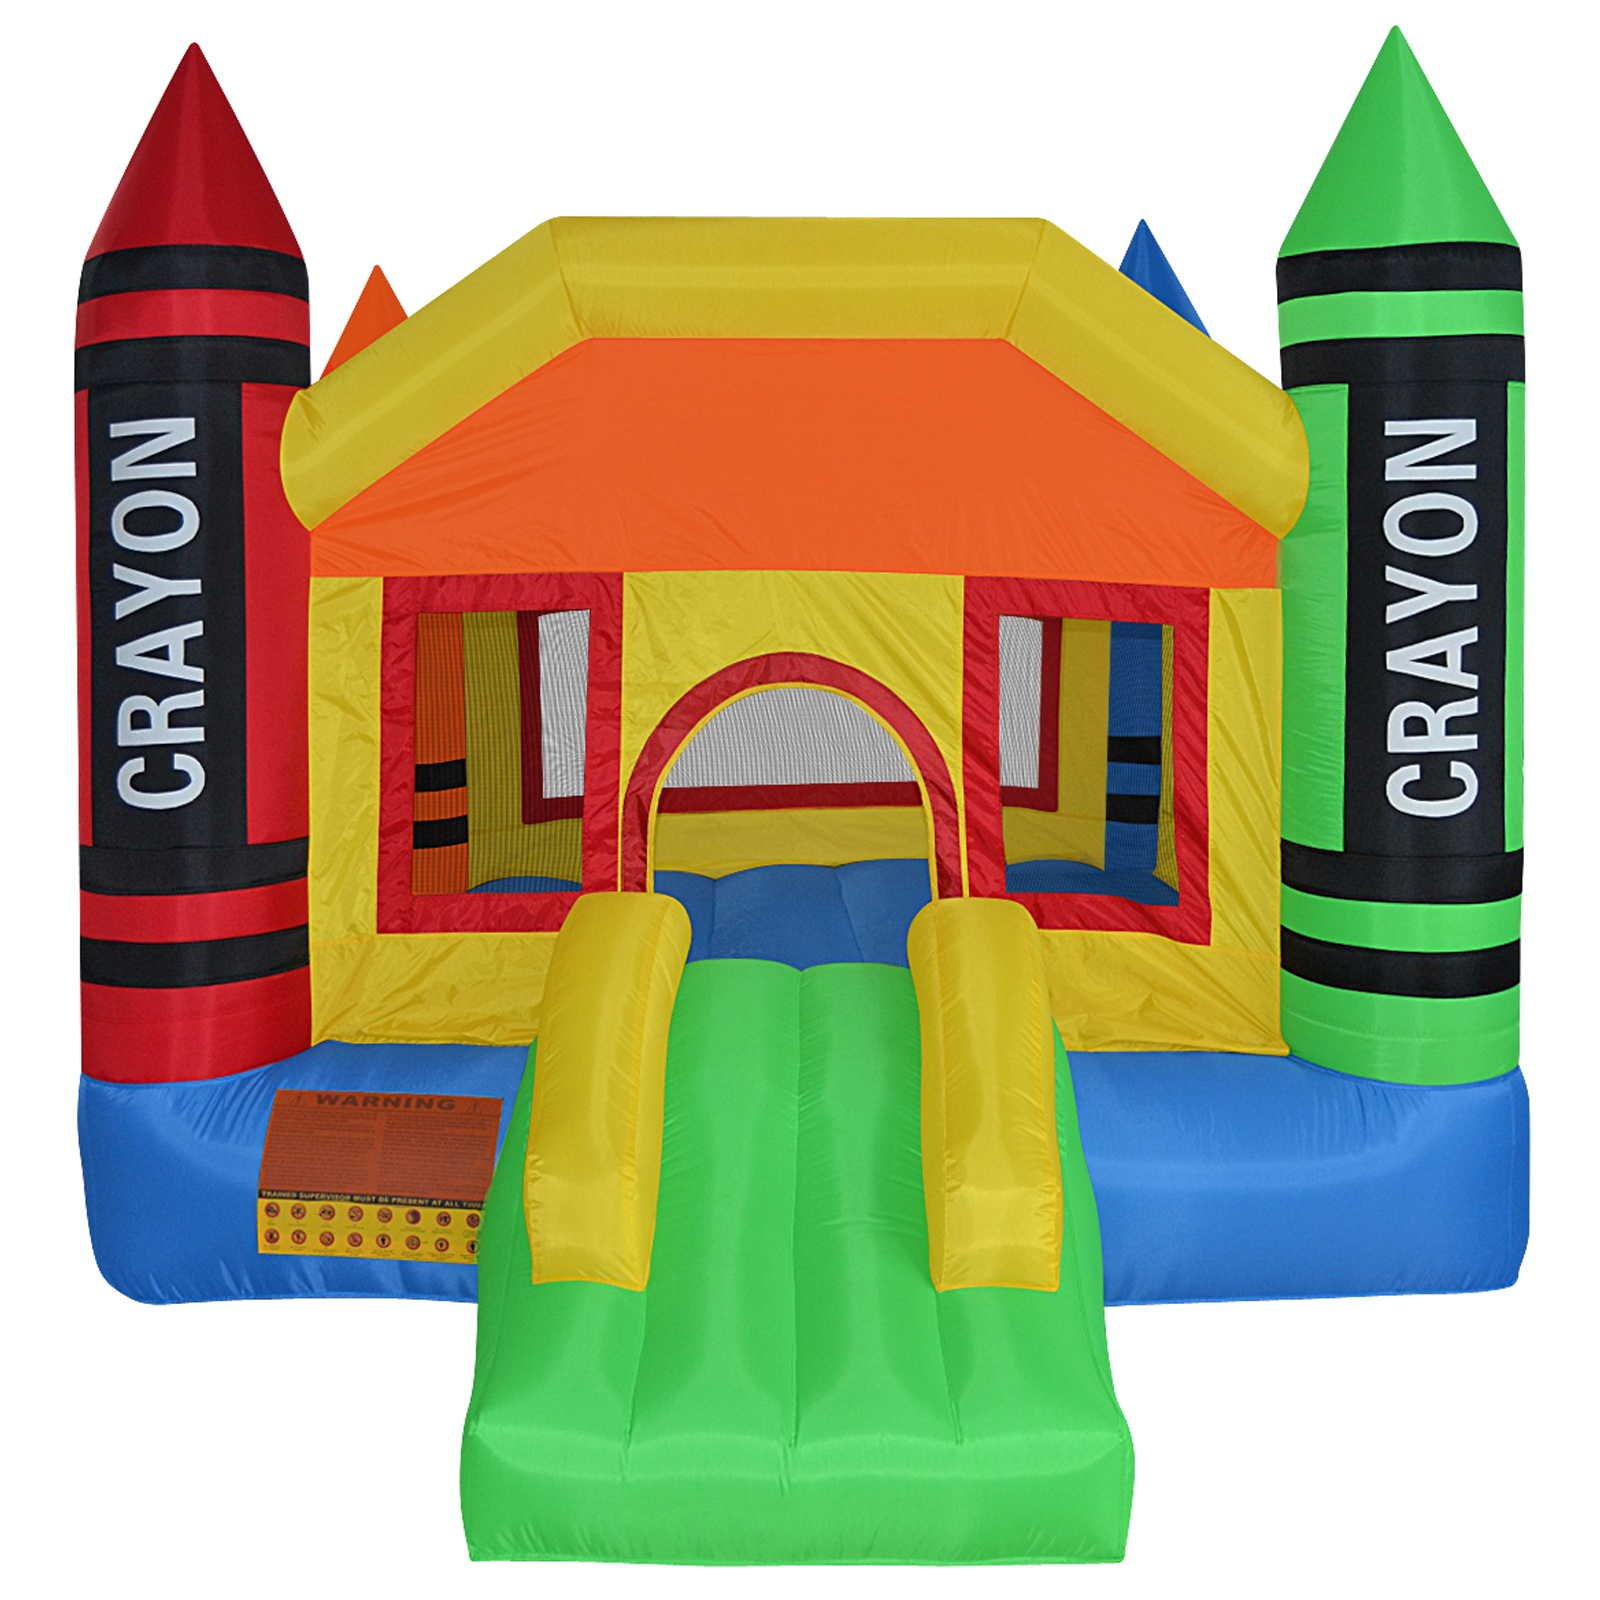 Cloud 9 Mighty Bounce House - Mini Crayon - Inflatable Kids Jumper with Blower by Cloud 9 (Image #3)